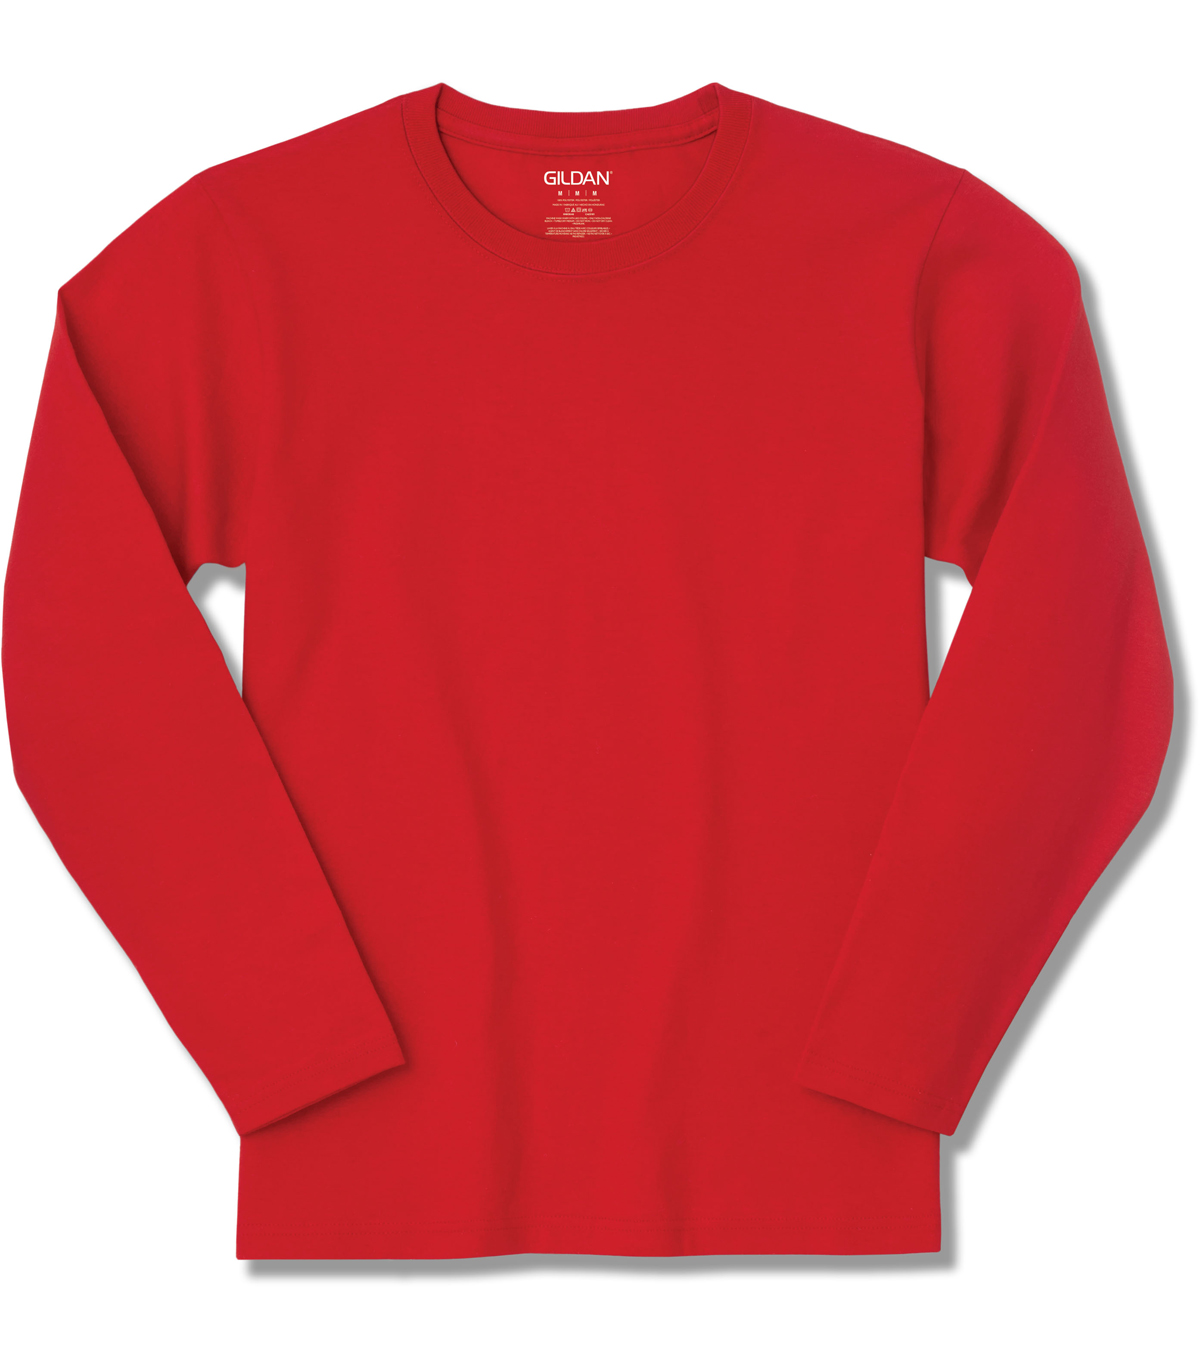 Gildan Large Youth Long Sleeve T-shirt, Red